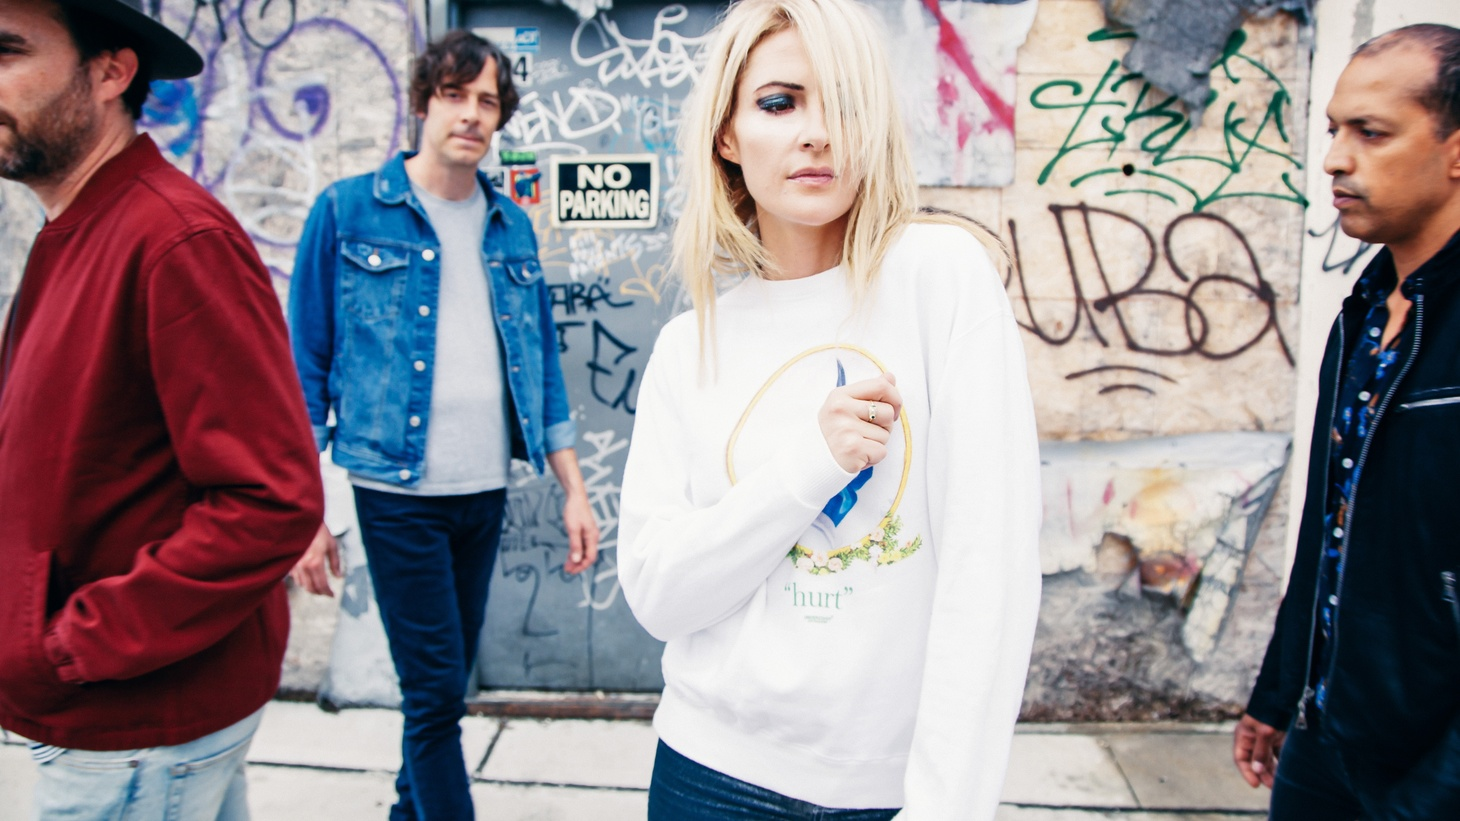 """When asked about Metric's song """"Now or Never Now"""" Emily Haines says: """"When you're suddenly confronted with the fact that you're rapidly running out of time to take action in your life, it isn't always pretty."""